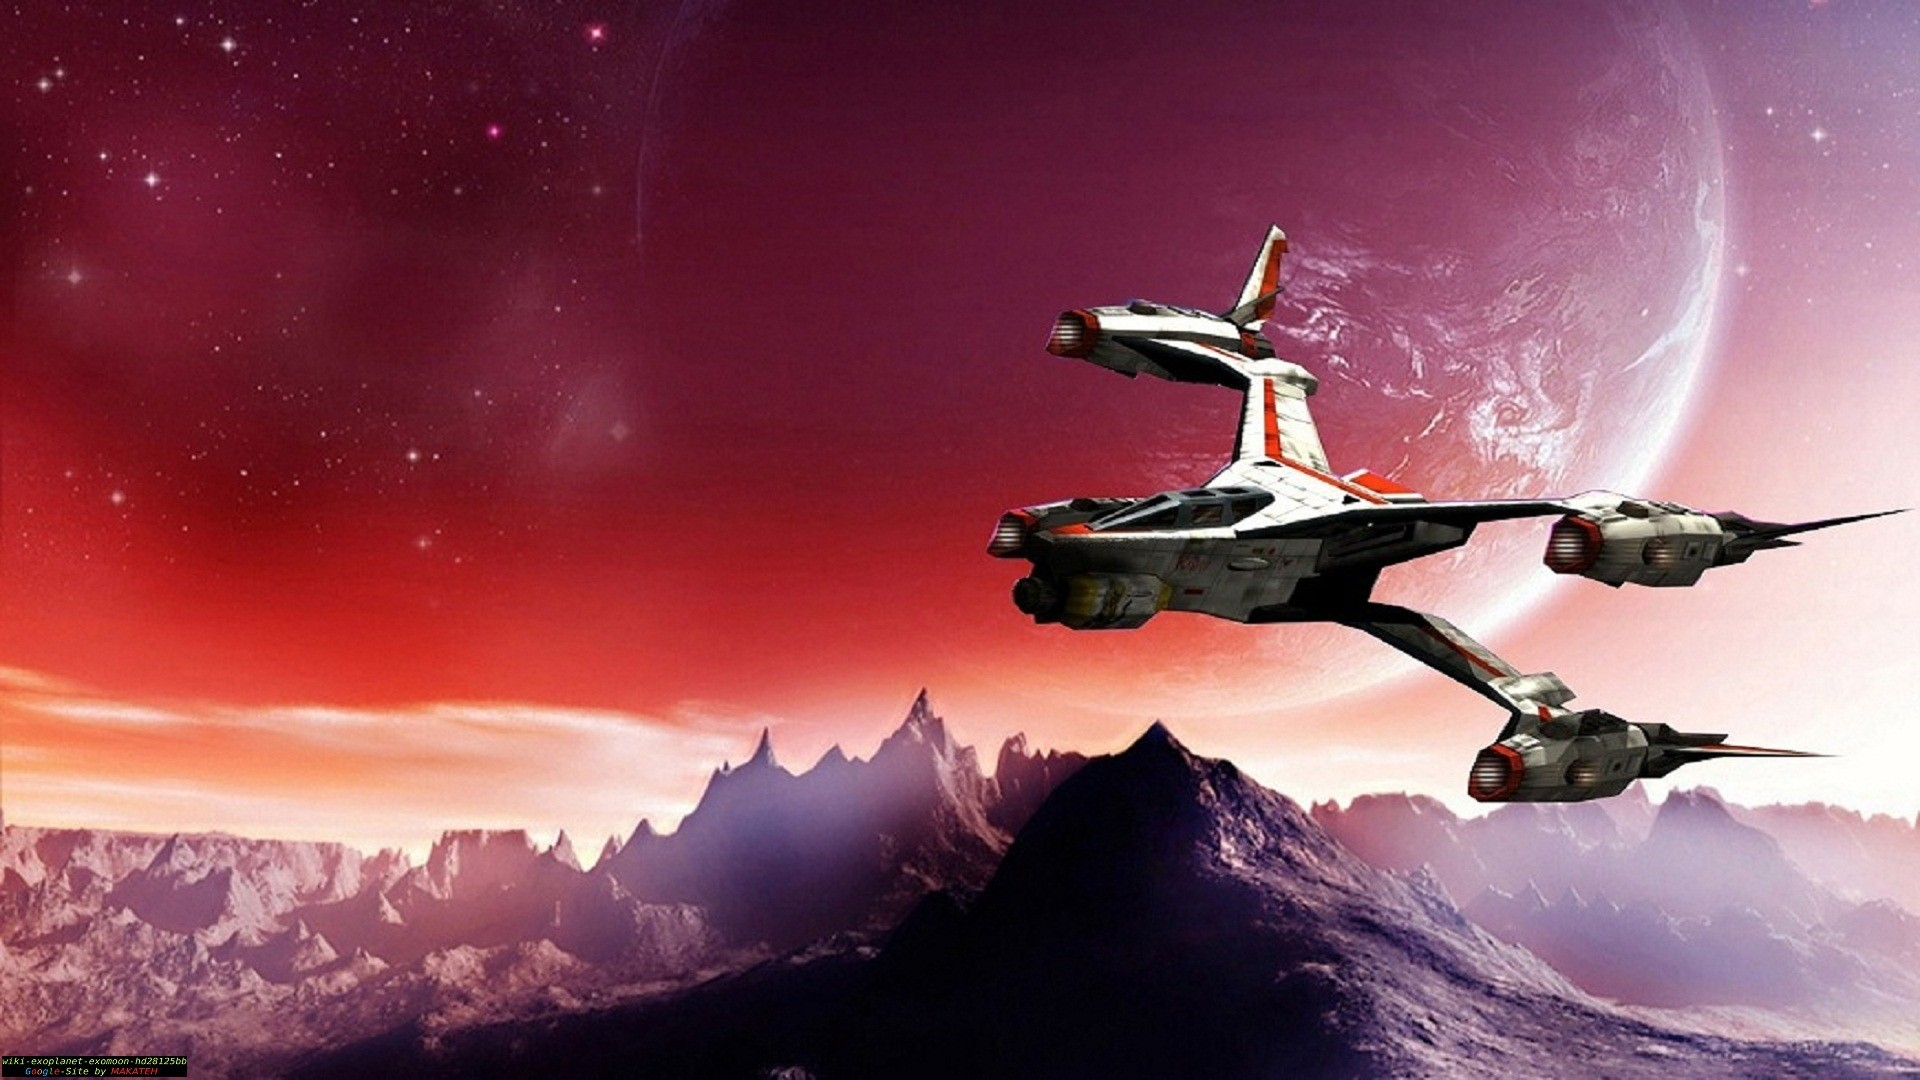 1920x1080 TV Show - Babylon 5 Ship Planet Moon Wallpaper